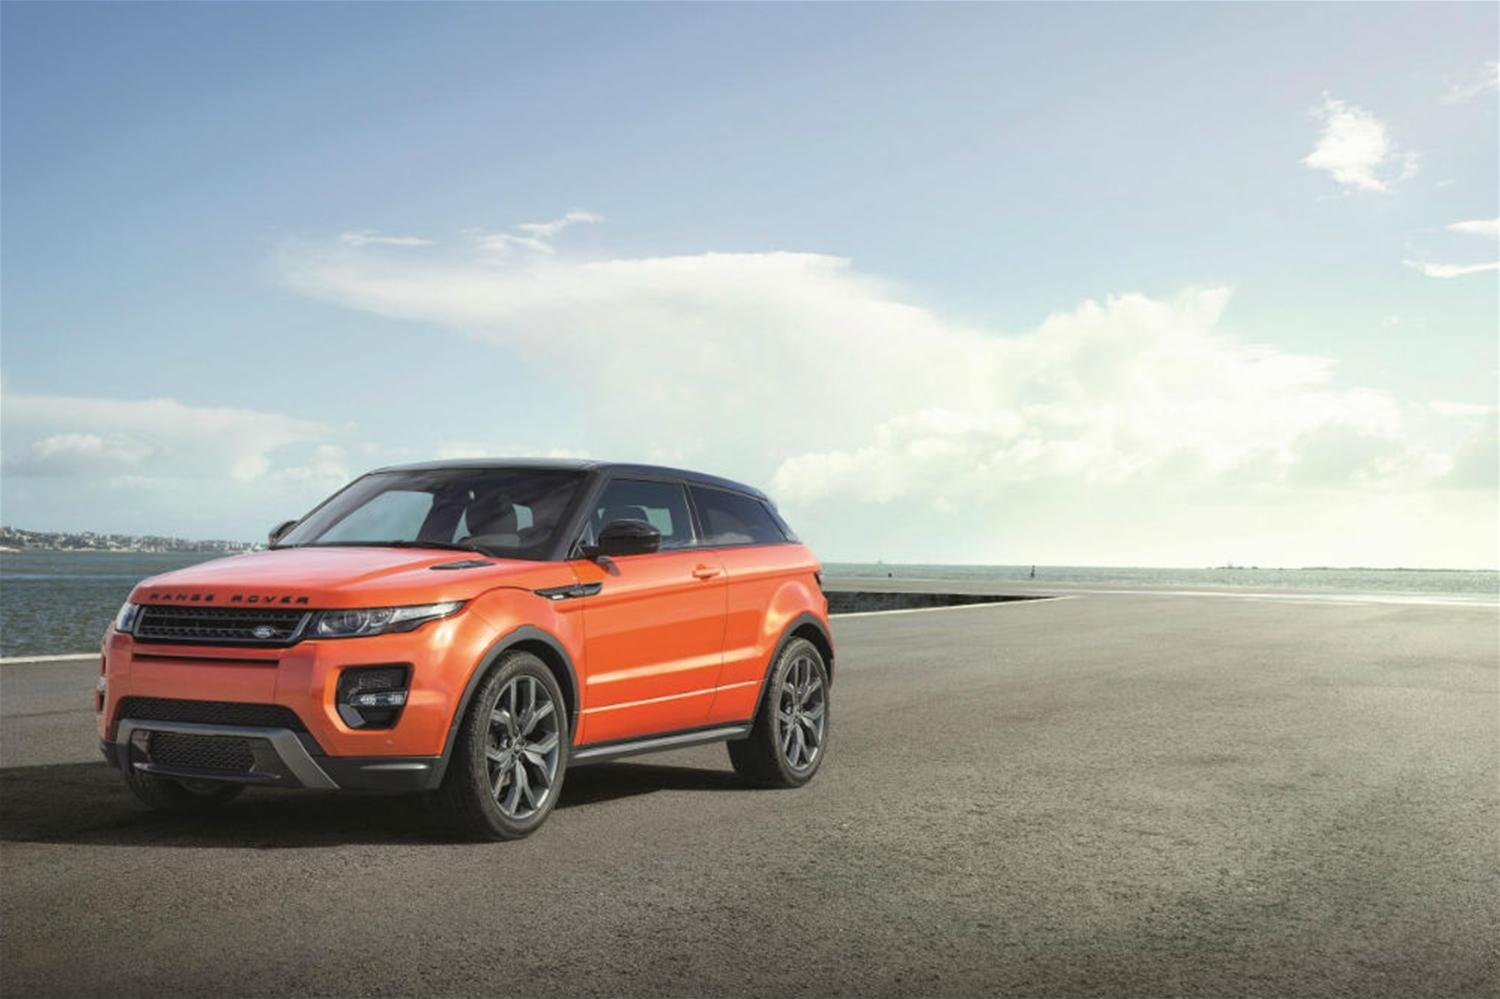 Most powerful Range Rover Evoque revealed